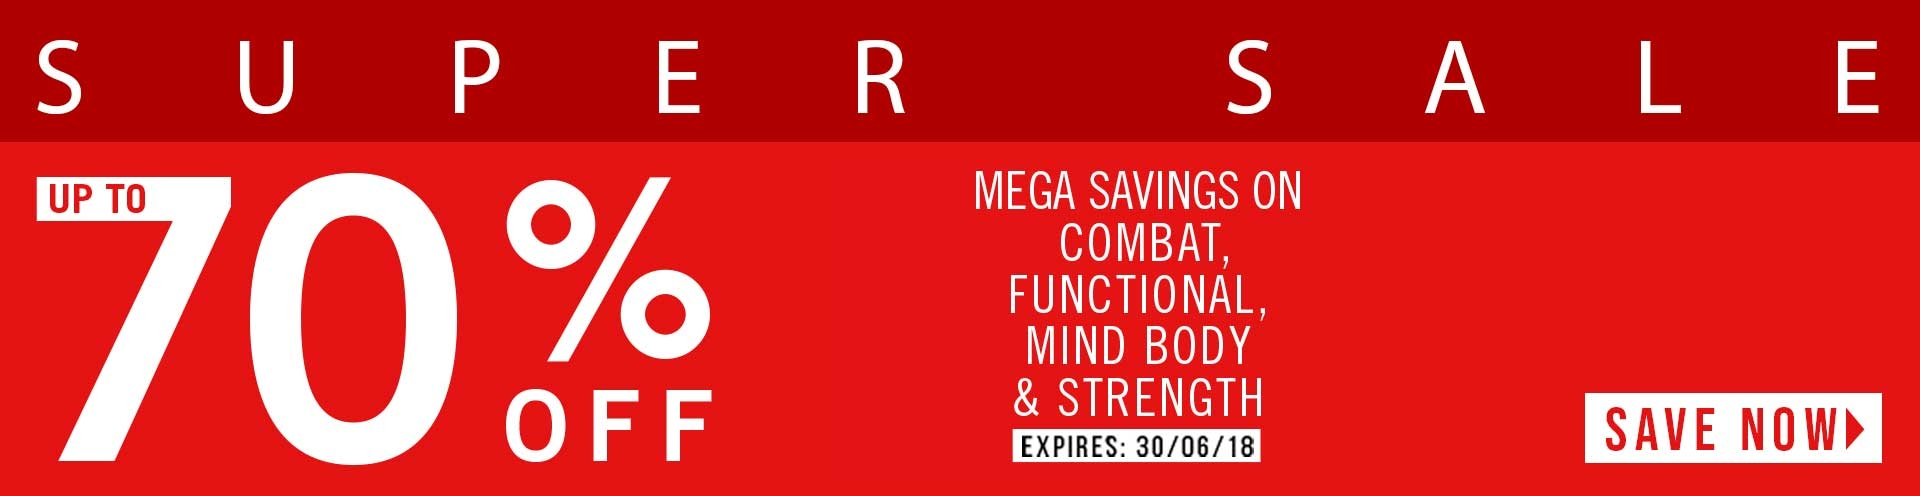 Up to 70% OFF Combat, Functional, Mind Body & Strength